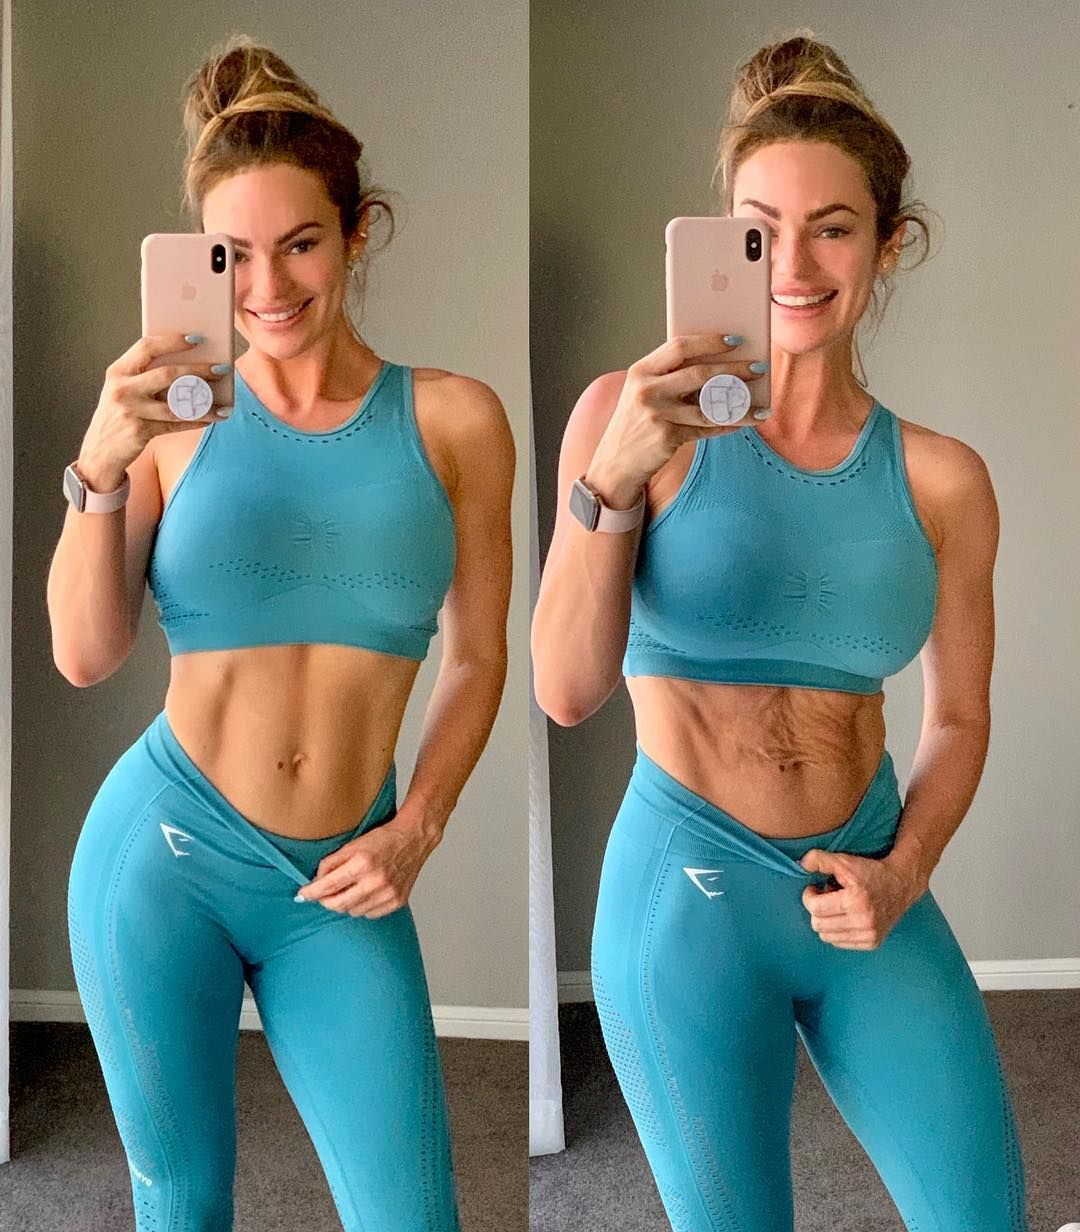 Emily Skye Reveals Saggy Wrinkly Belly Skin On Instagram For women who have dealt with stretch marks as a result of weight gain or weight loss as opposed to pregnancy, the emphasis on loving these scars can be equally unnerving. saggy wrinkly belly skin